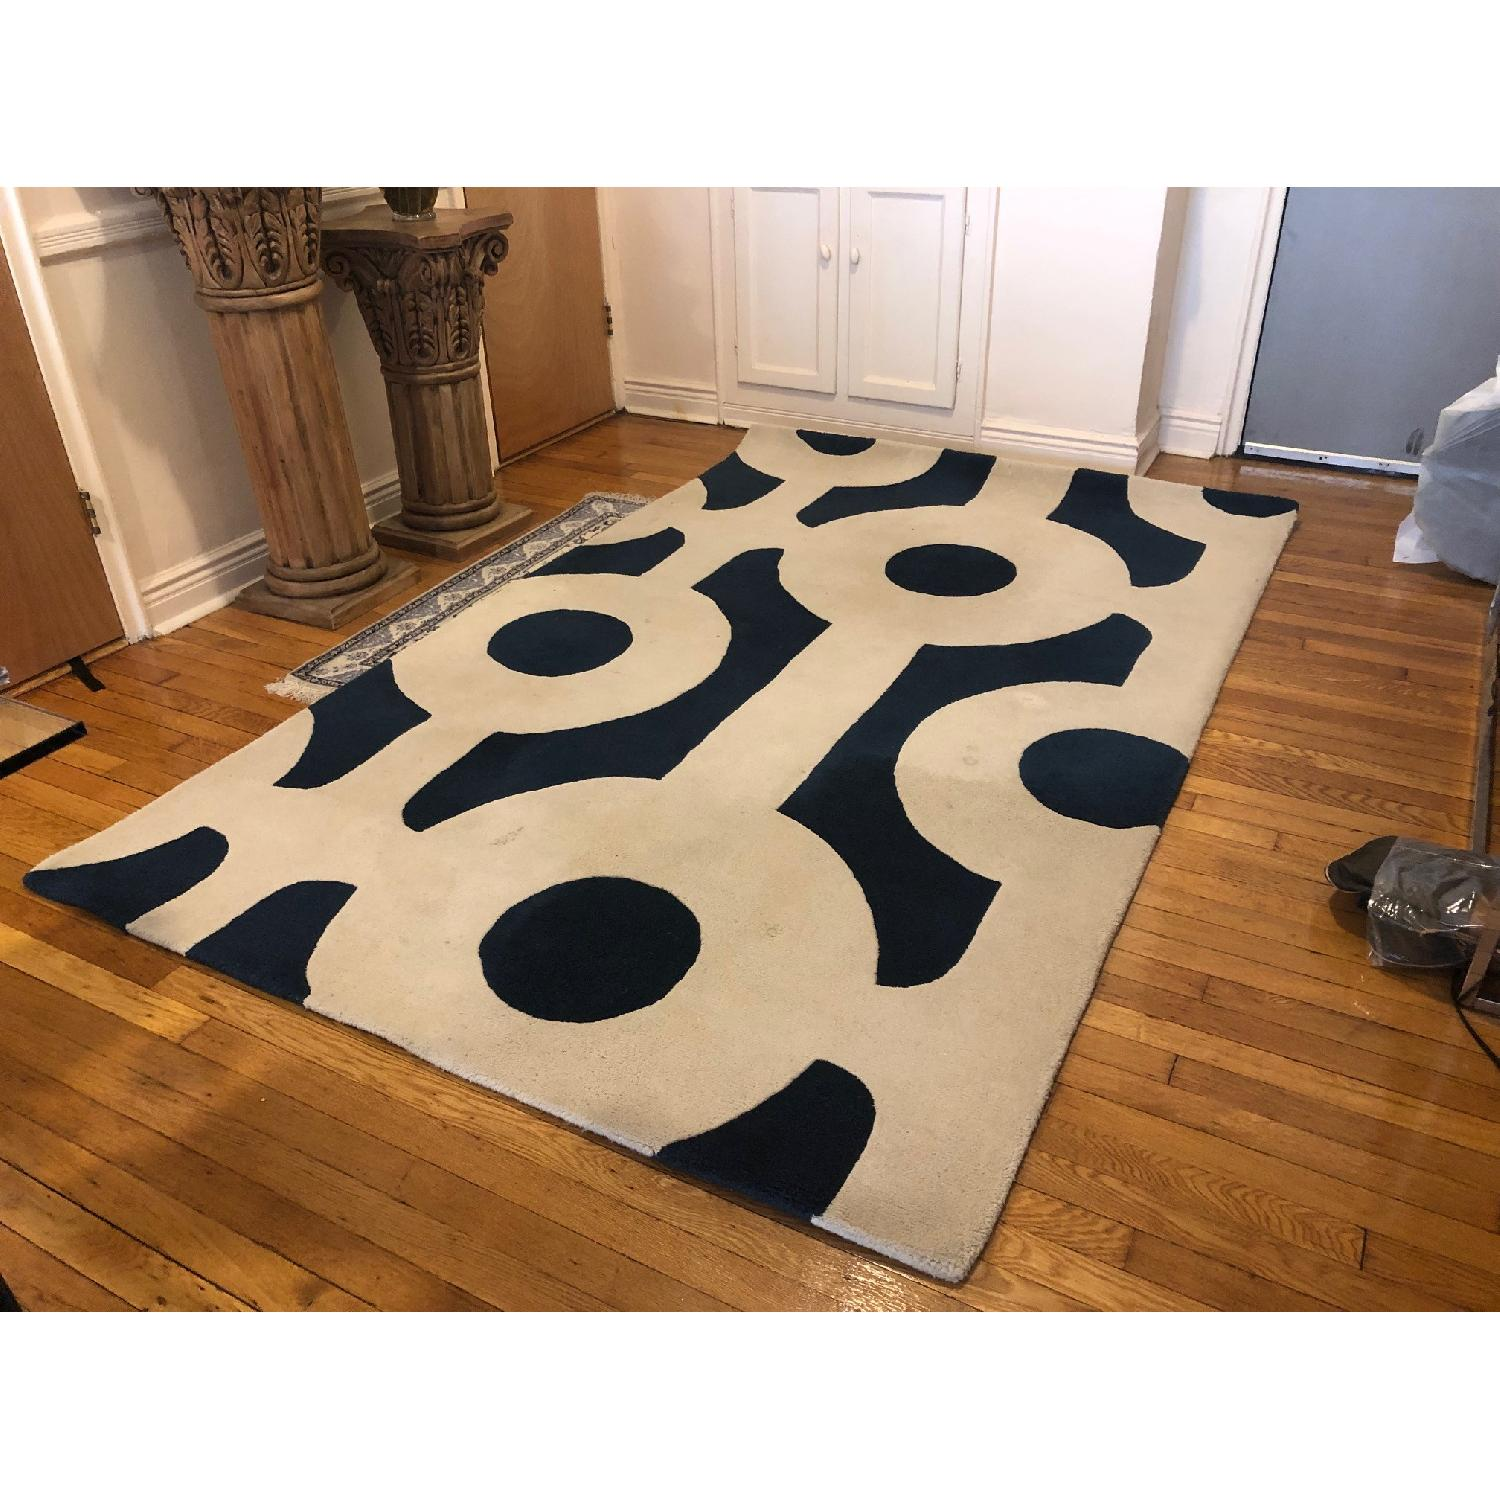 CB2 Roundabout Area Rug-1